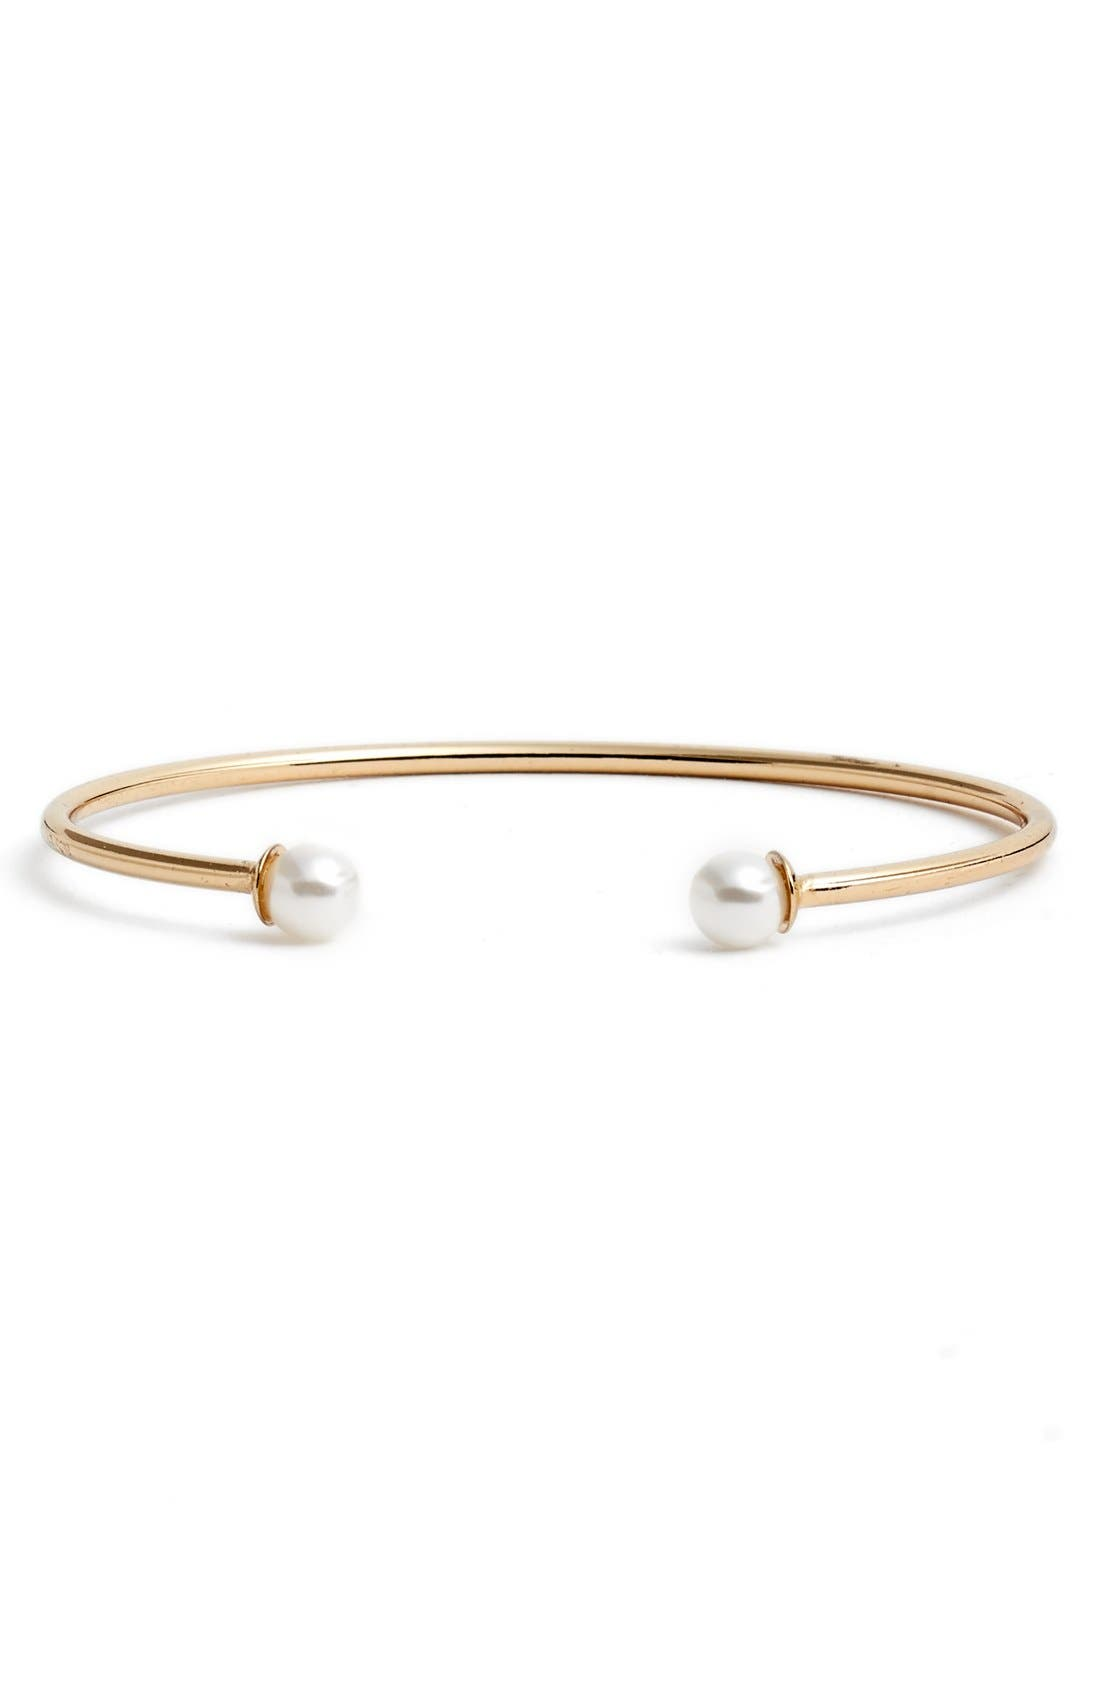 Alternate Image 1 Selected - BP. Faux Pearl Dainty Cuff